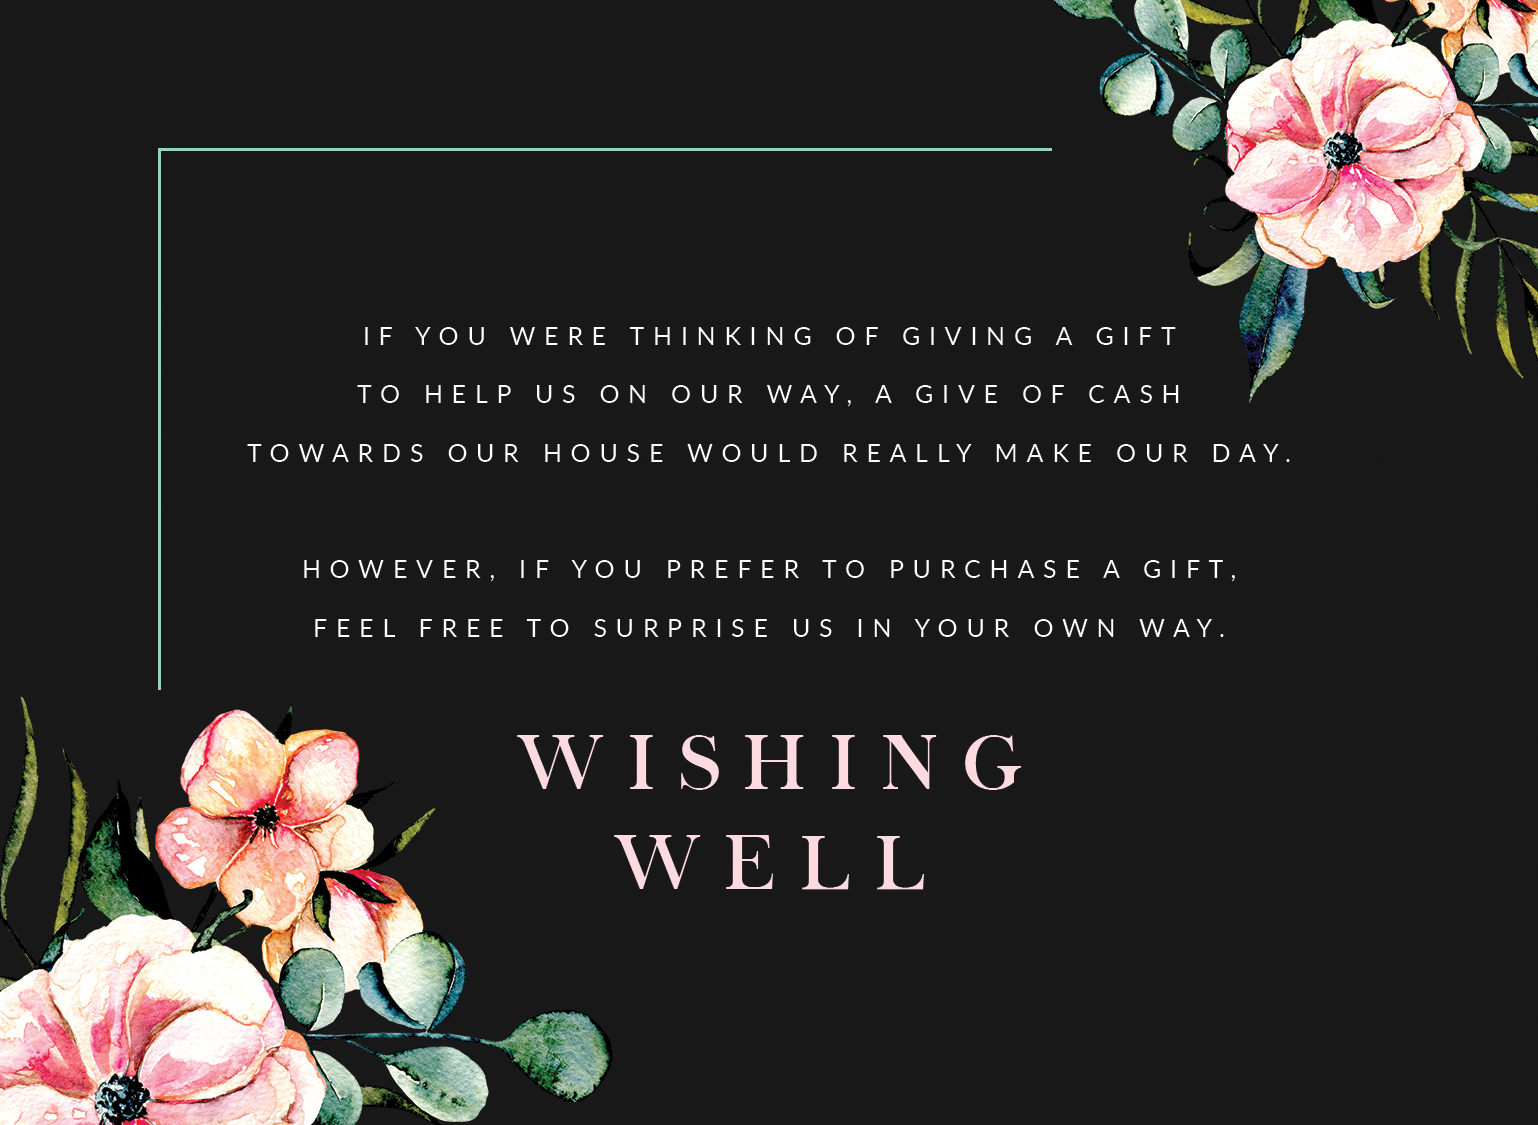 Wishing Well - US A1 CARD SIZE - COLOR 2_RGB.png